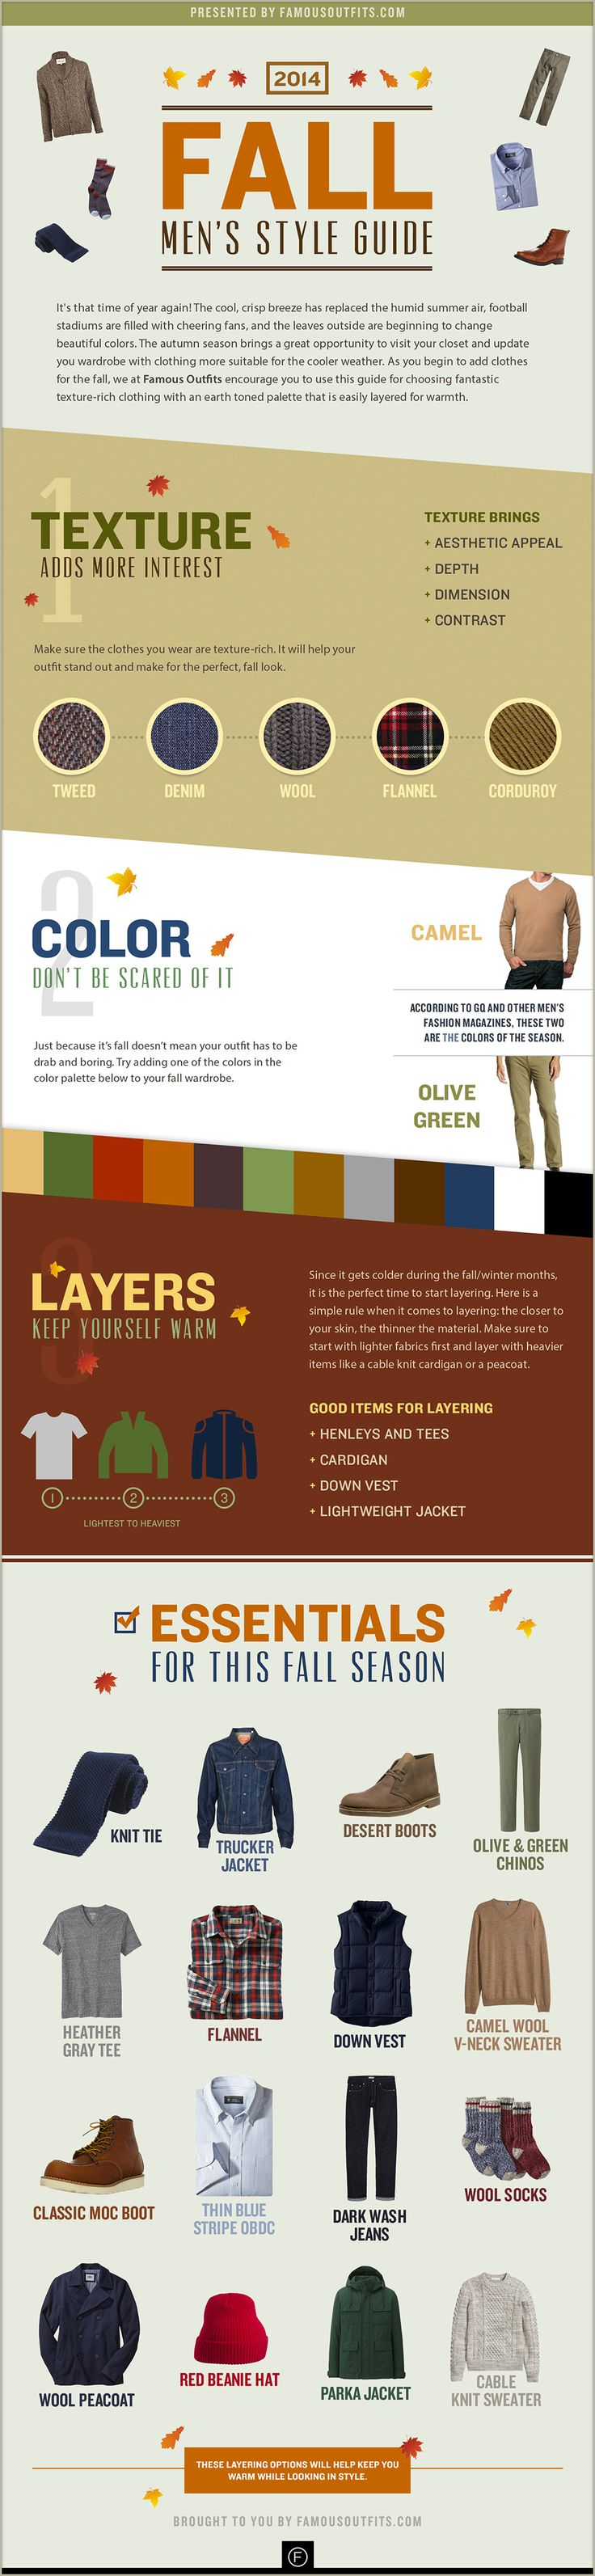 mens fall fashion style guide